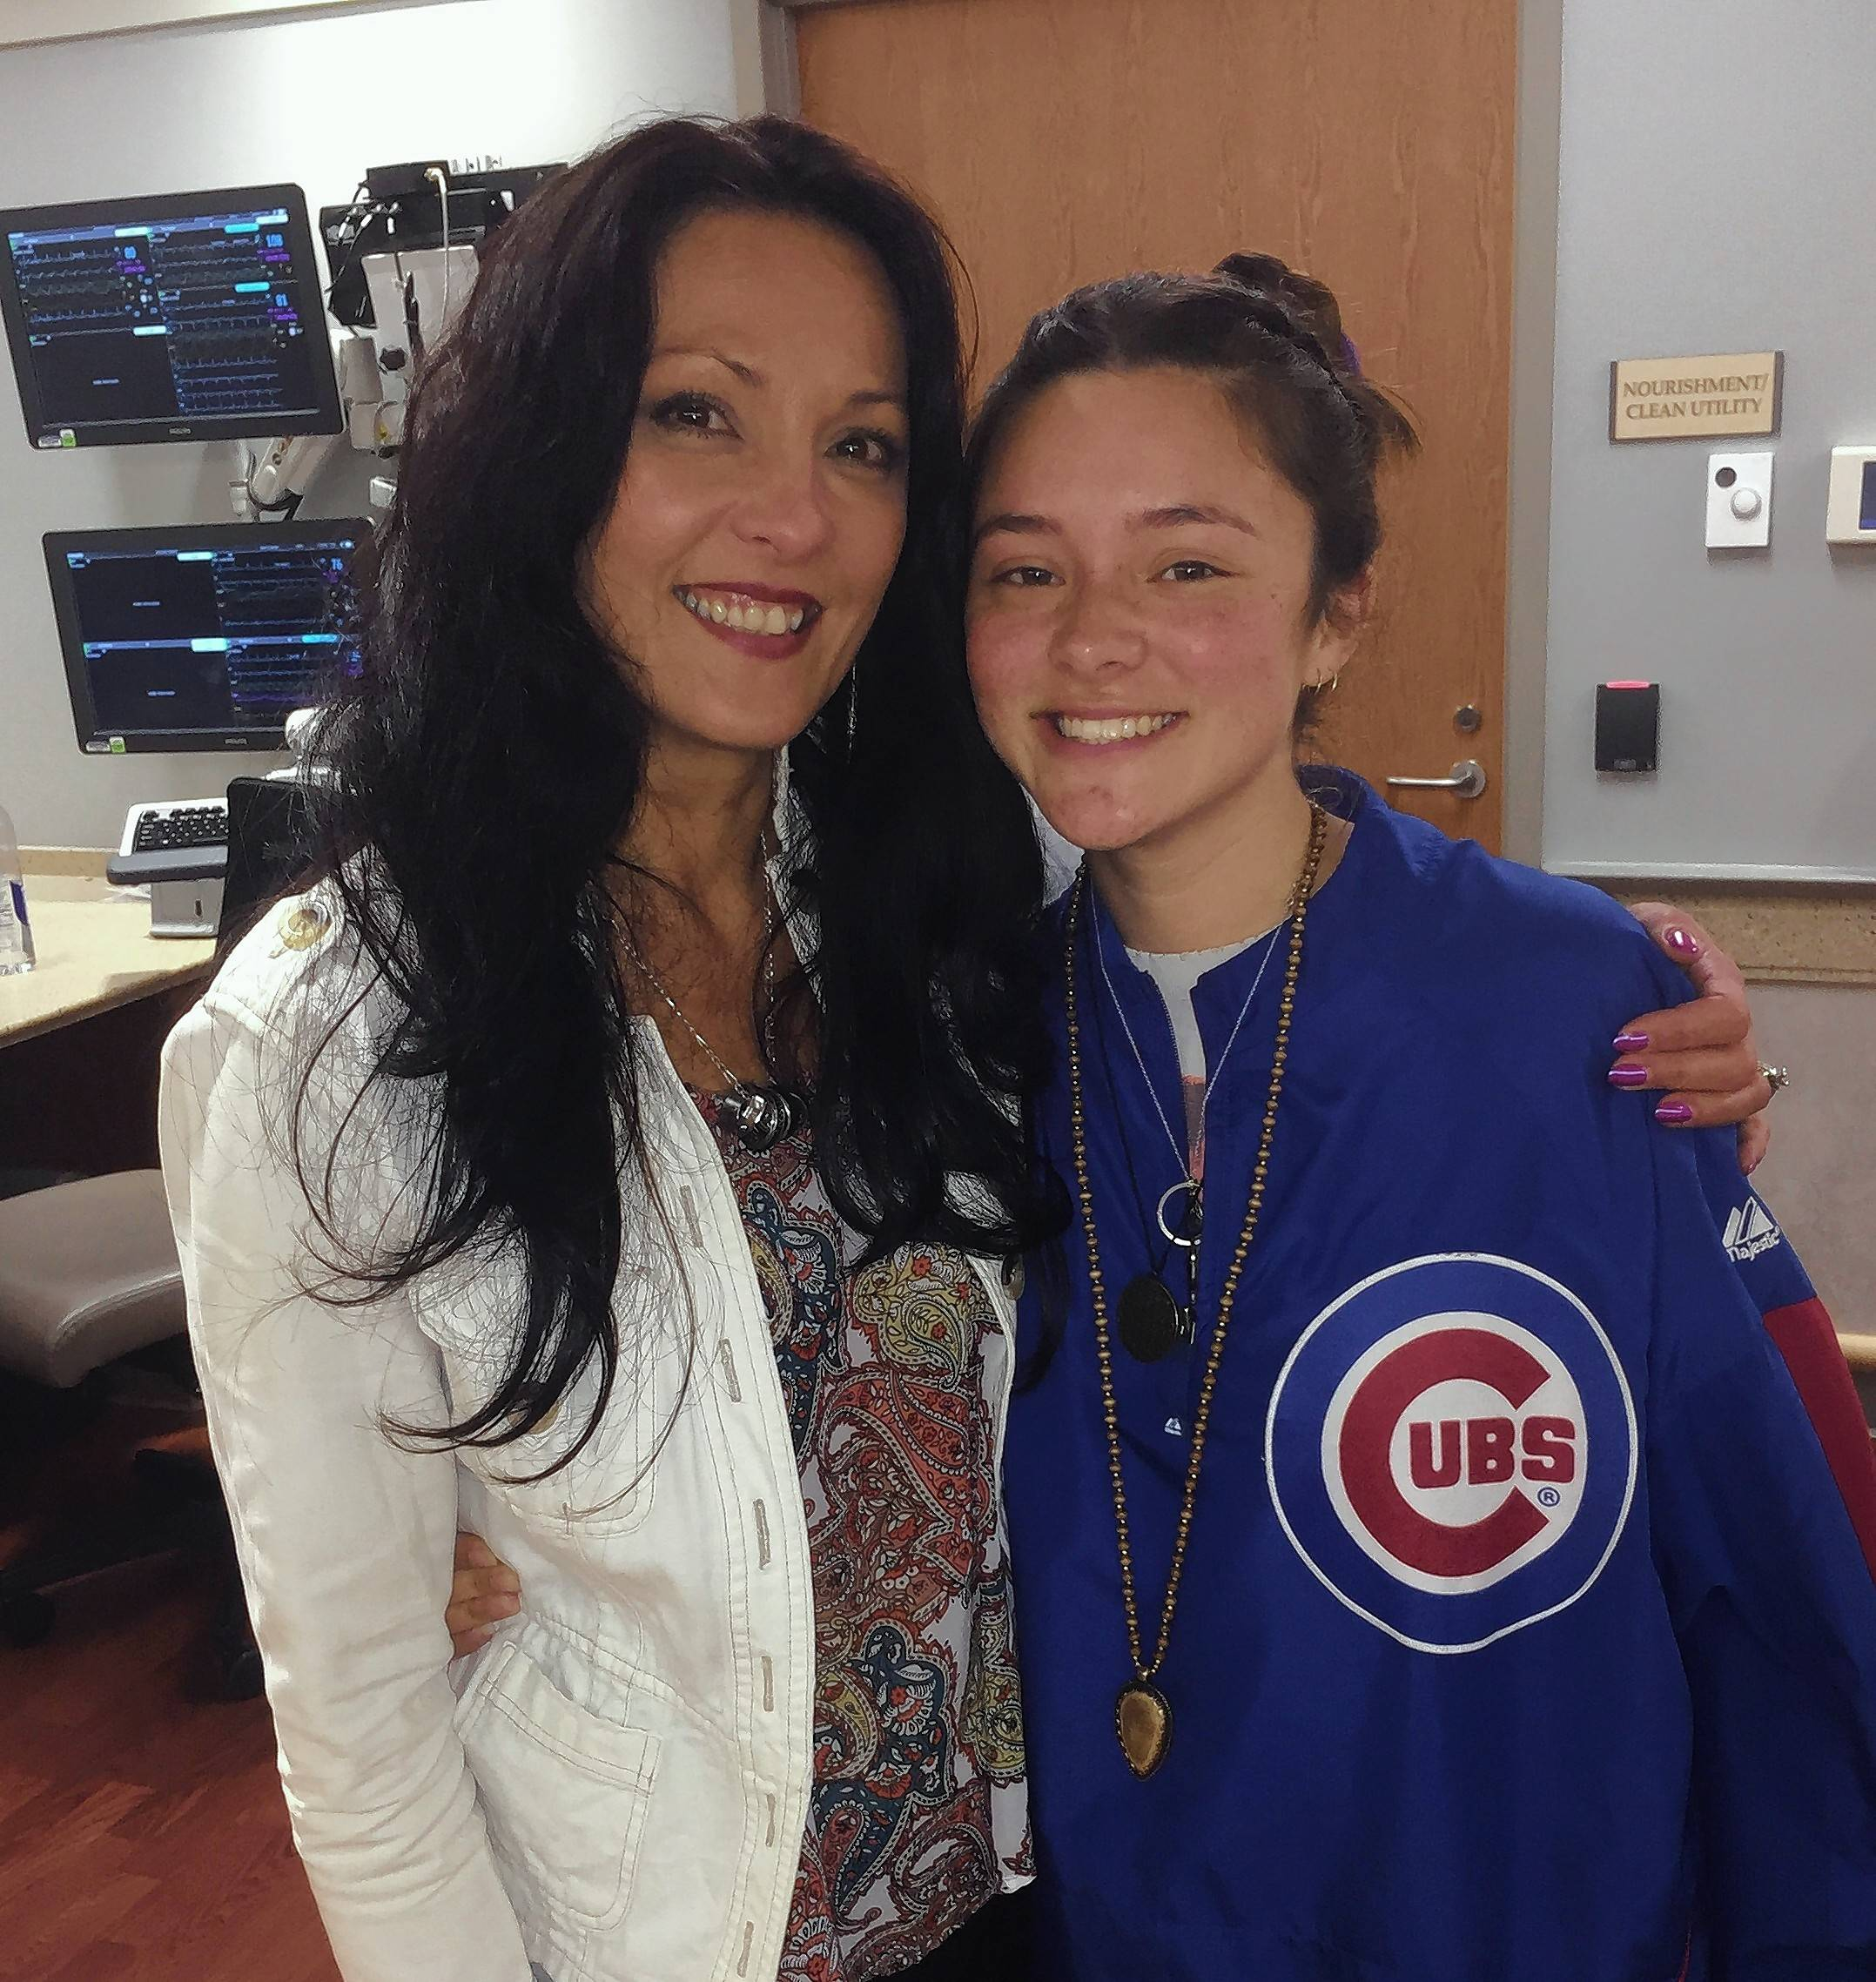 Isabella Griffin, right, wears her dad's Cubs jacket Friday at Edward Hospital in Naperville with her mom, Sara Case. Isabella's dad, Michael Case, is in critical condition at Edward after being shot while working as an Amtrak conductor.